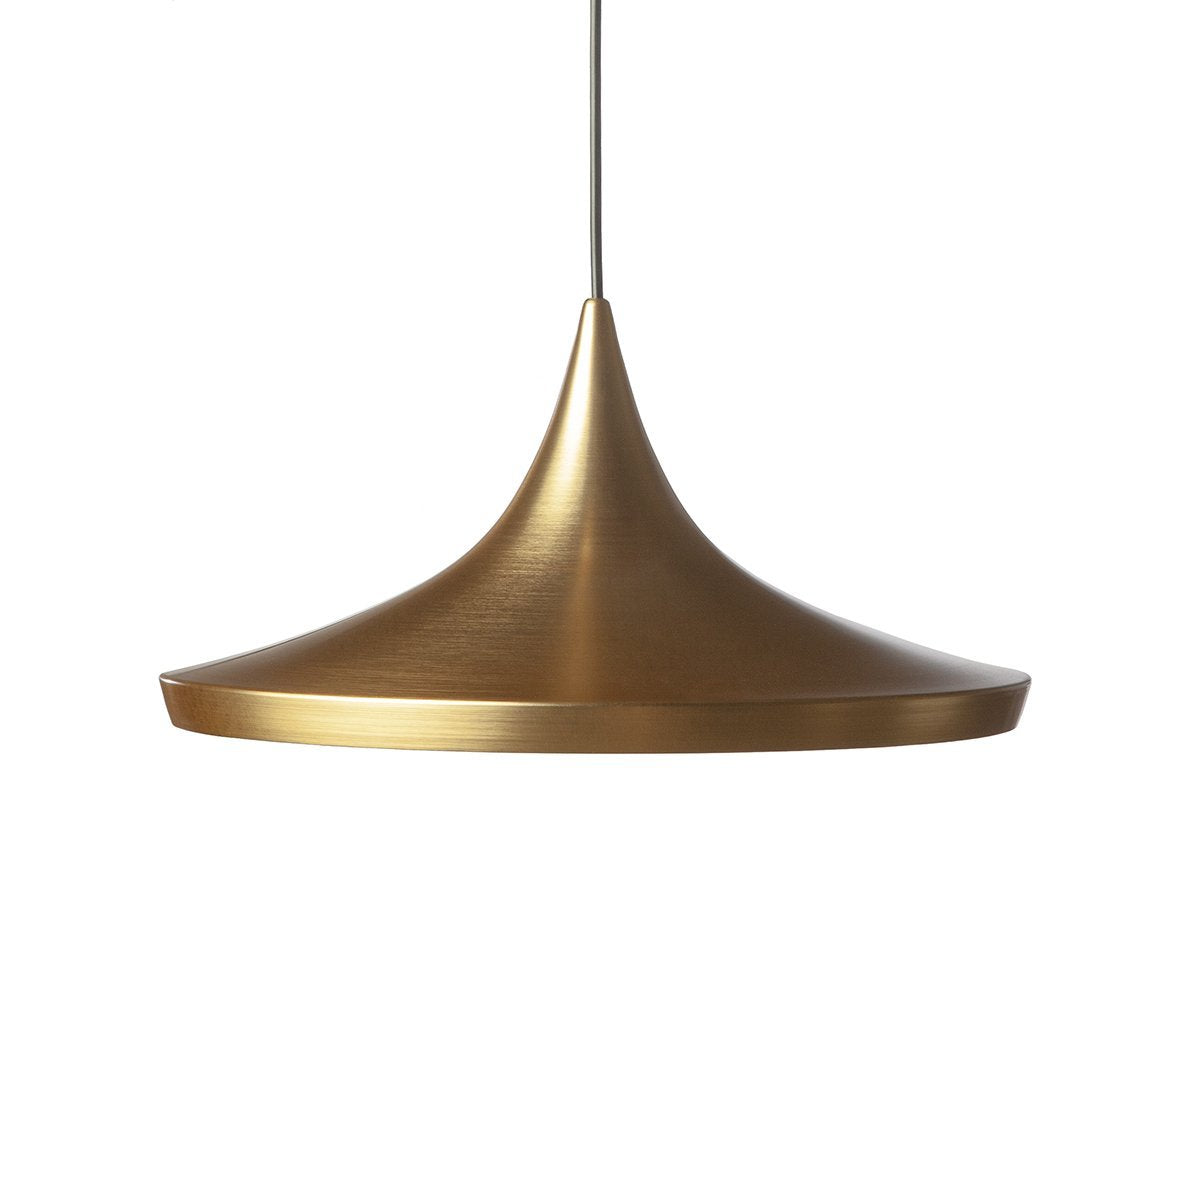 [LM1036PGOLD] The Jetson Pendant Lamp